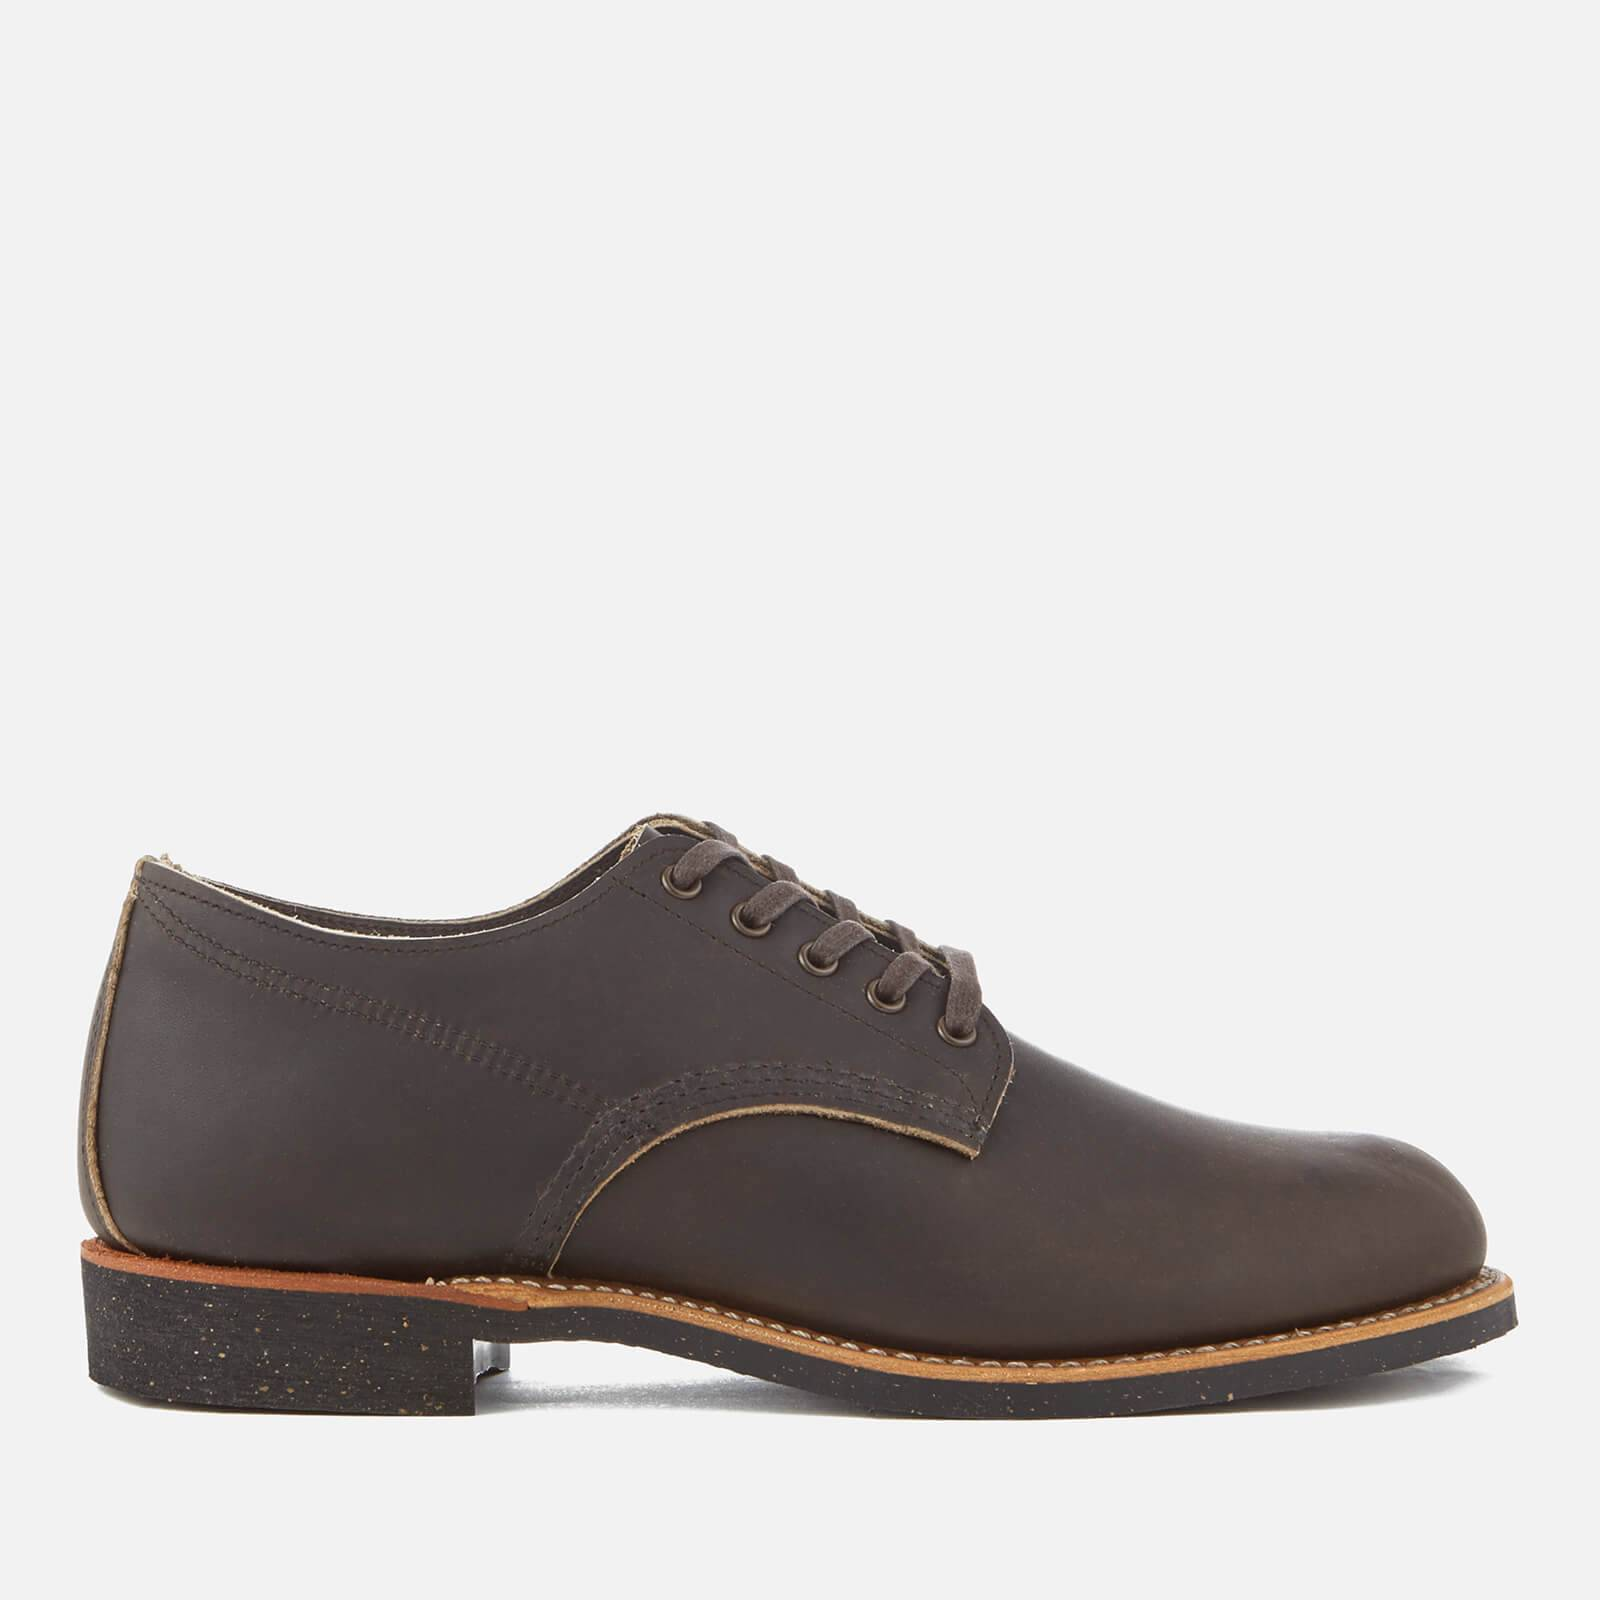 Red Wing Men's Merchant Leather Oxford Shoes - Ebony Harness - UK 8 - Brown